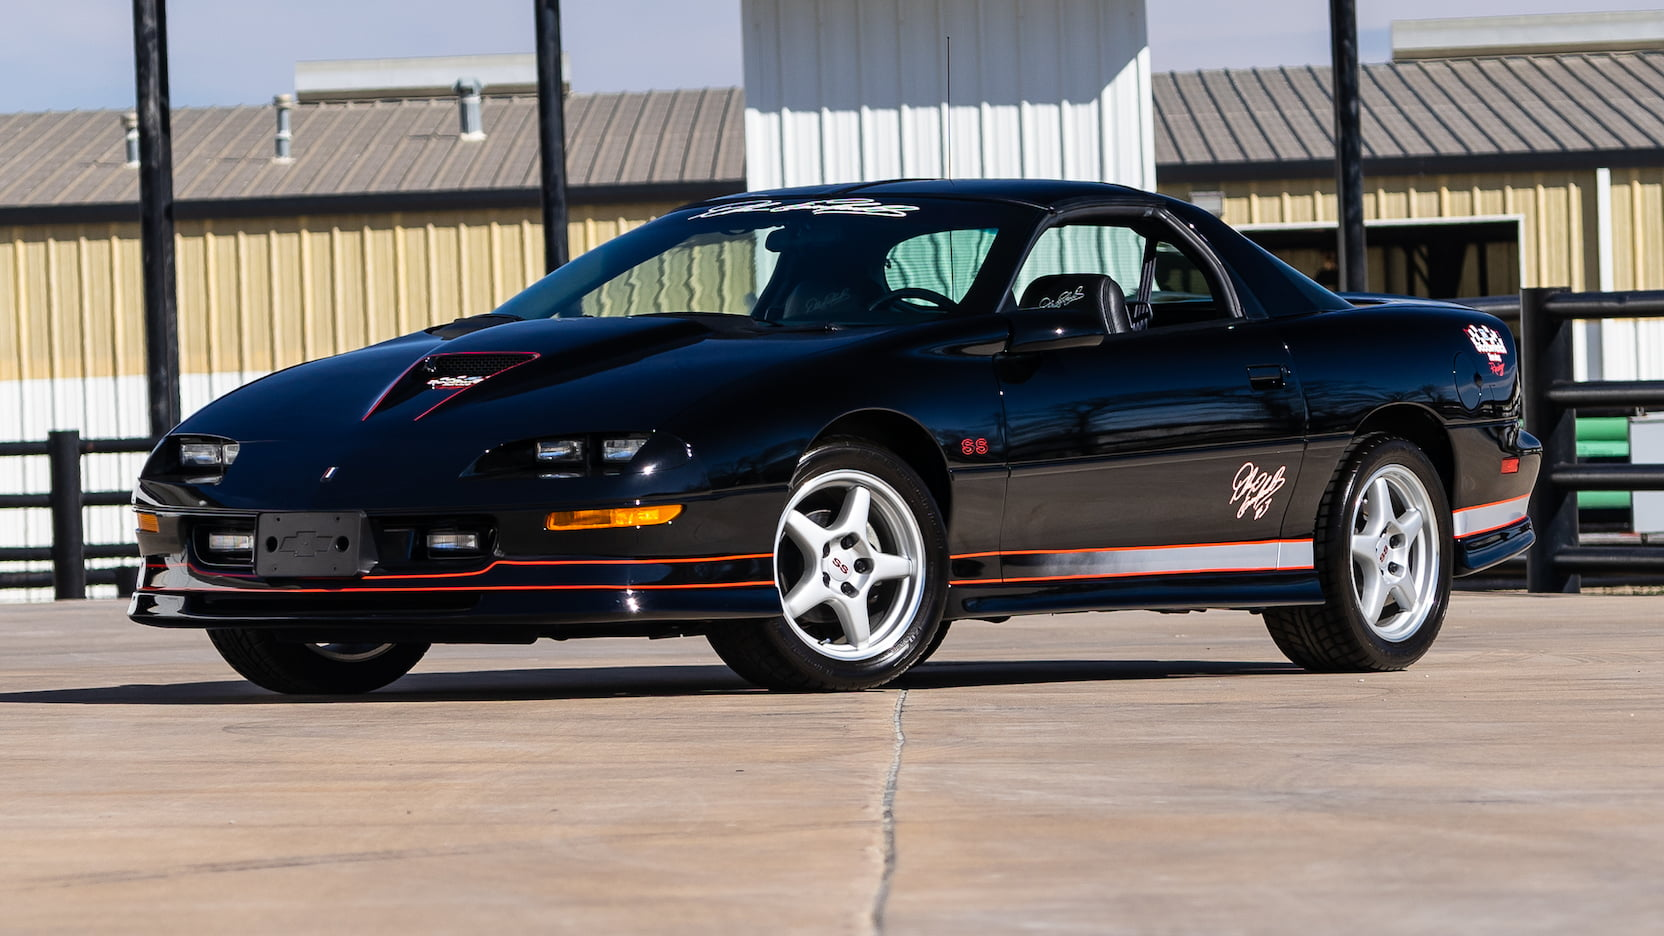 1996 Chevrolet Camaro Z28 Earnhardt Edition